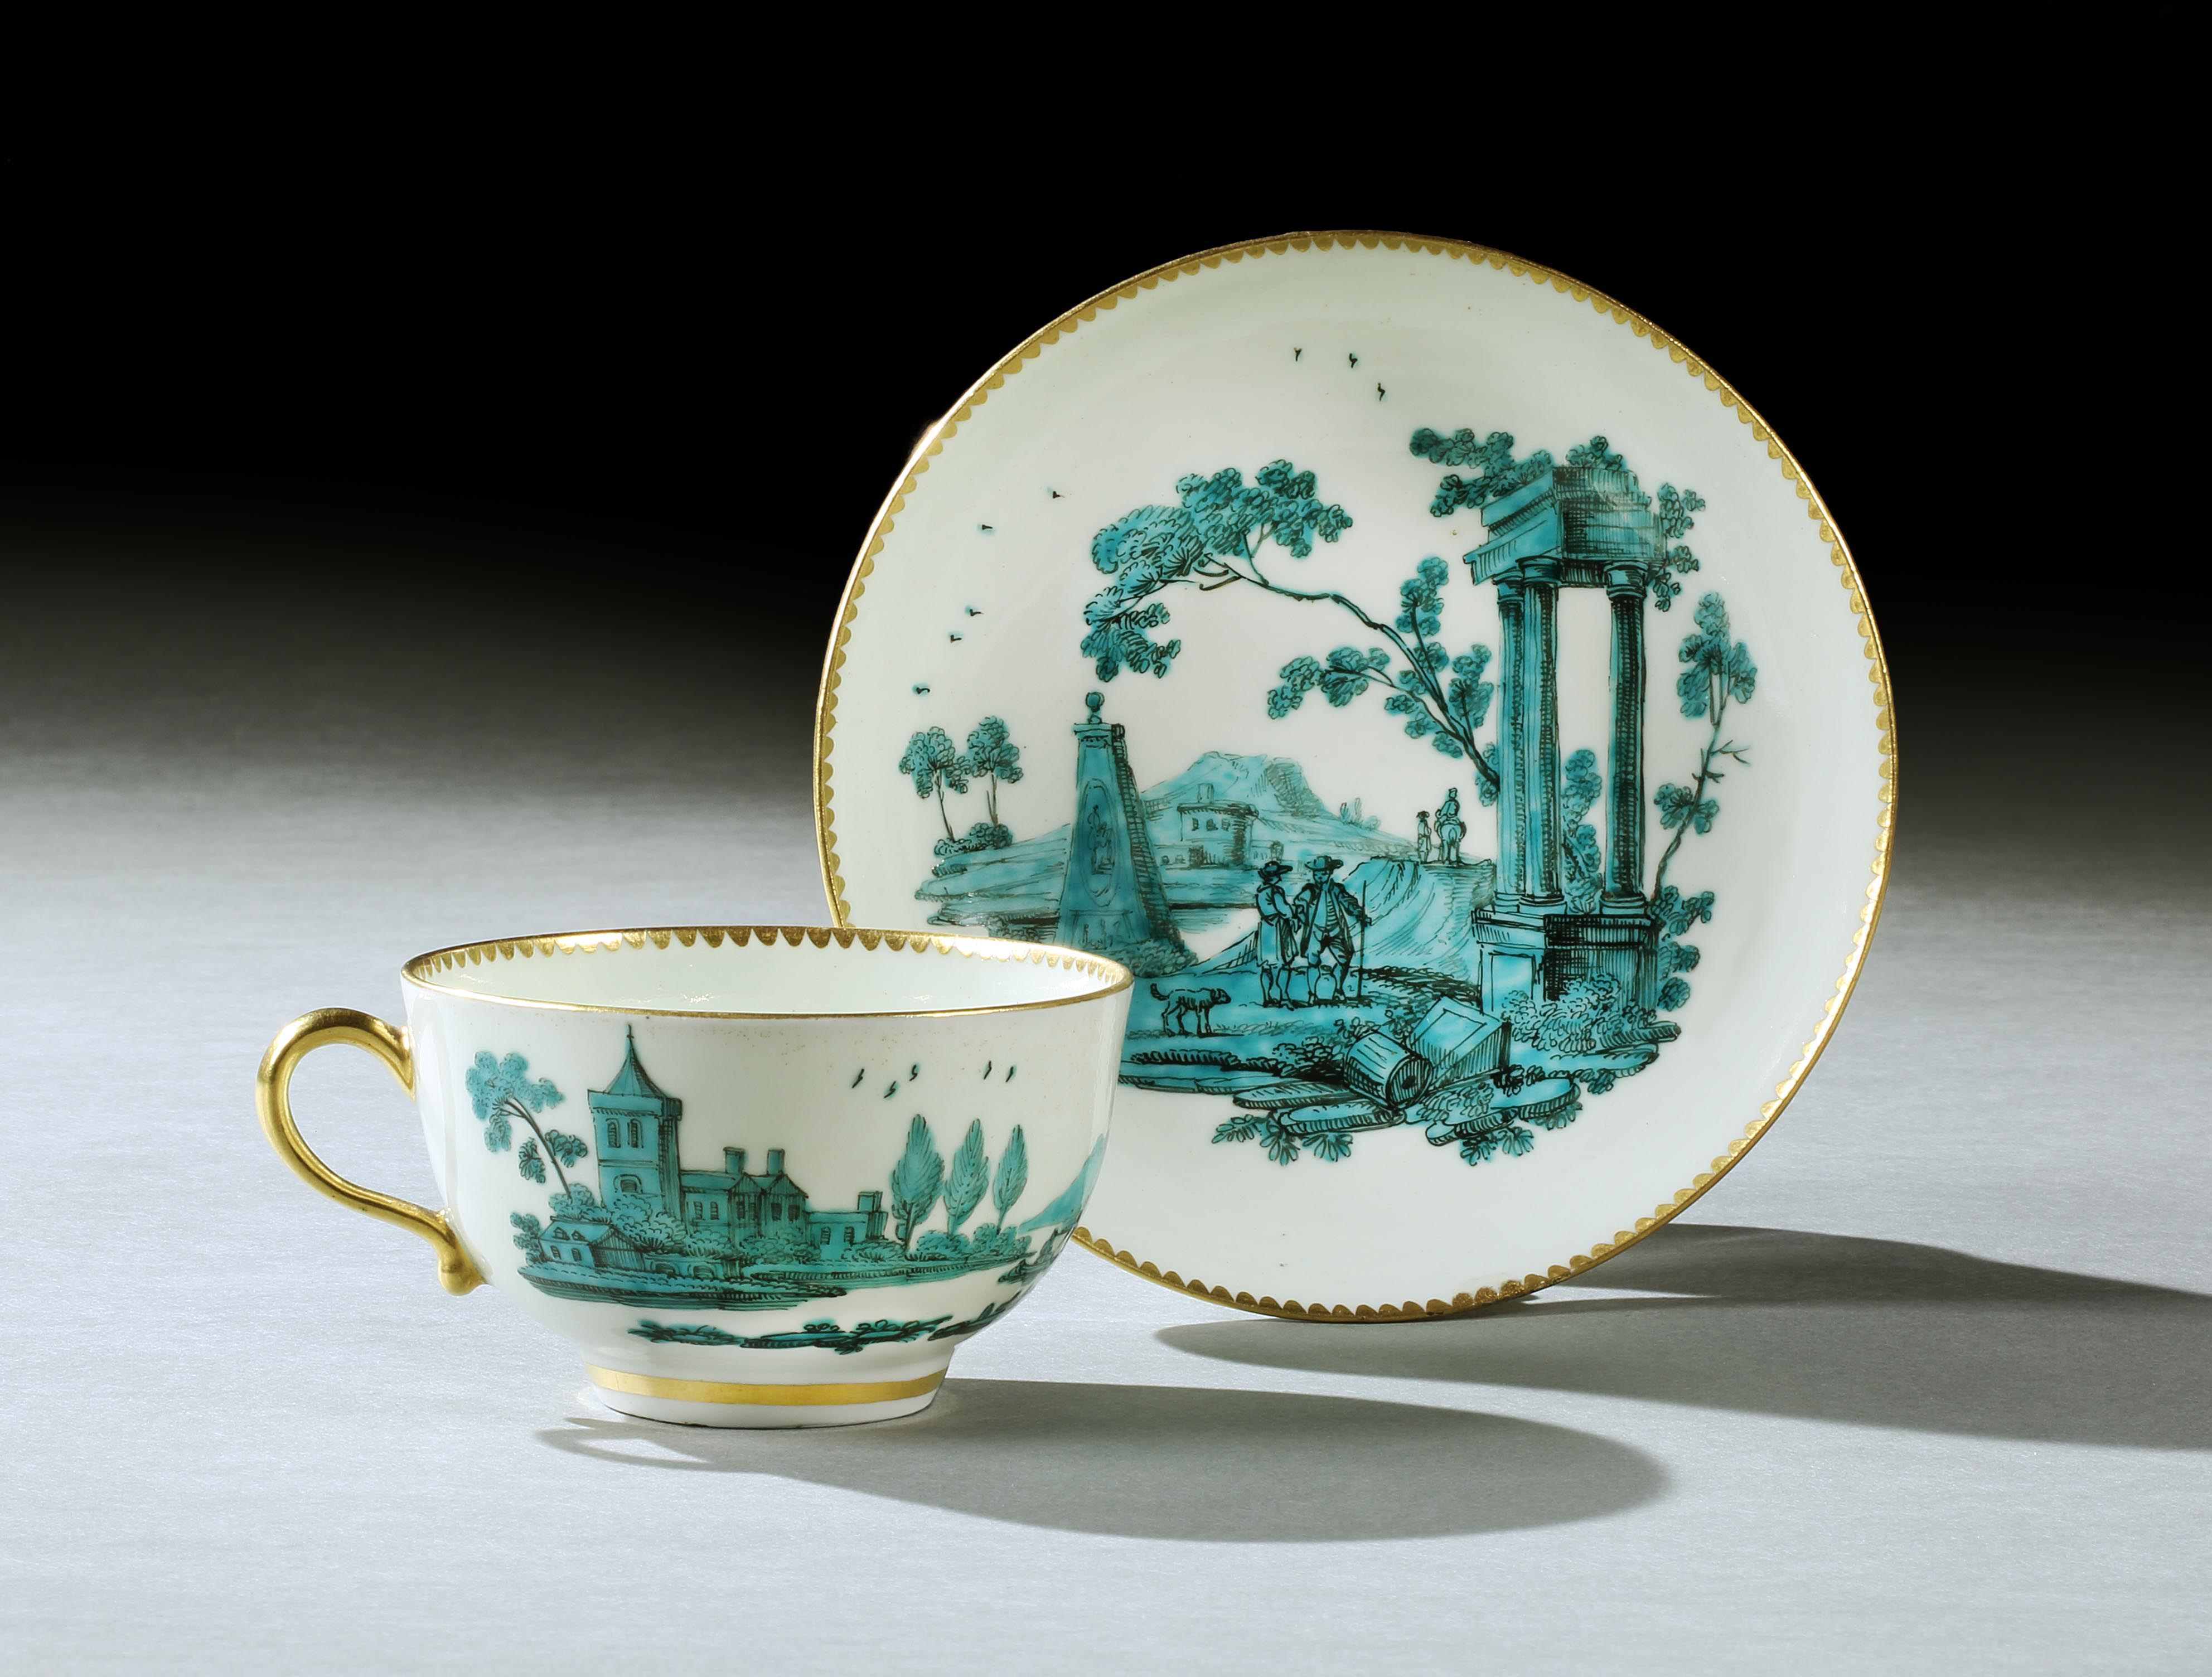 A Worcester Teacup and Saucer by the atelier of James Giles from the Saltram Service Mackinnon Fine Furniture Collection